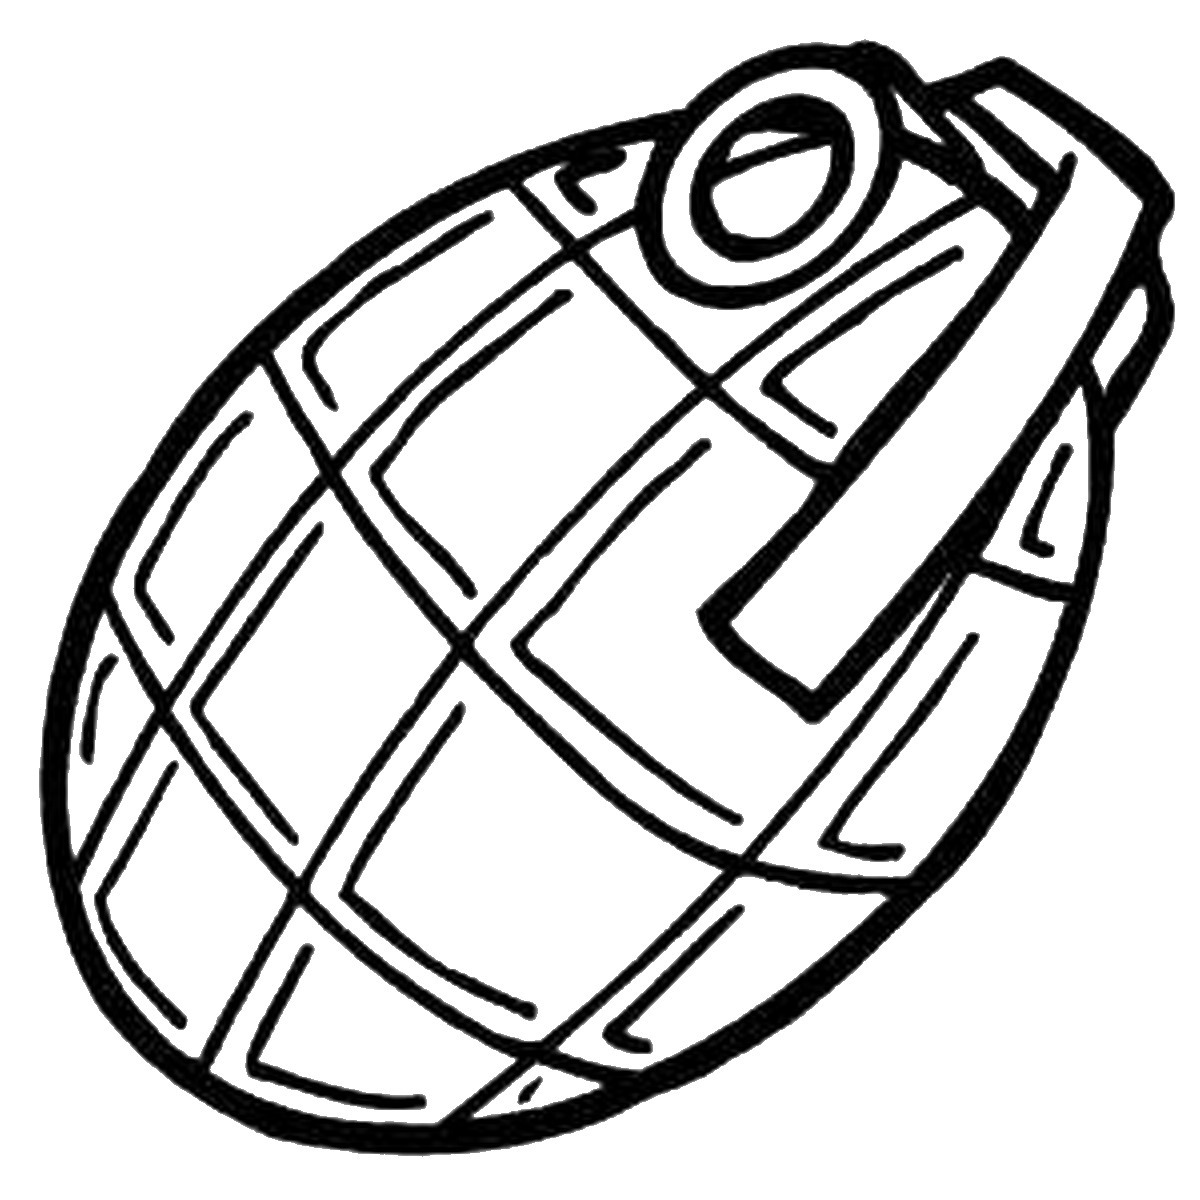 army coloring pages printable army vehicles coloring pages to download and print for free printable pages coloring army